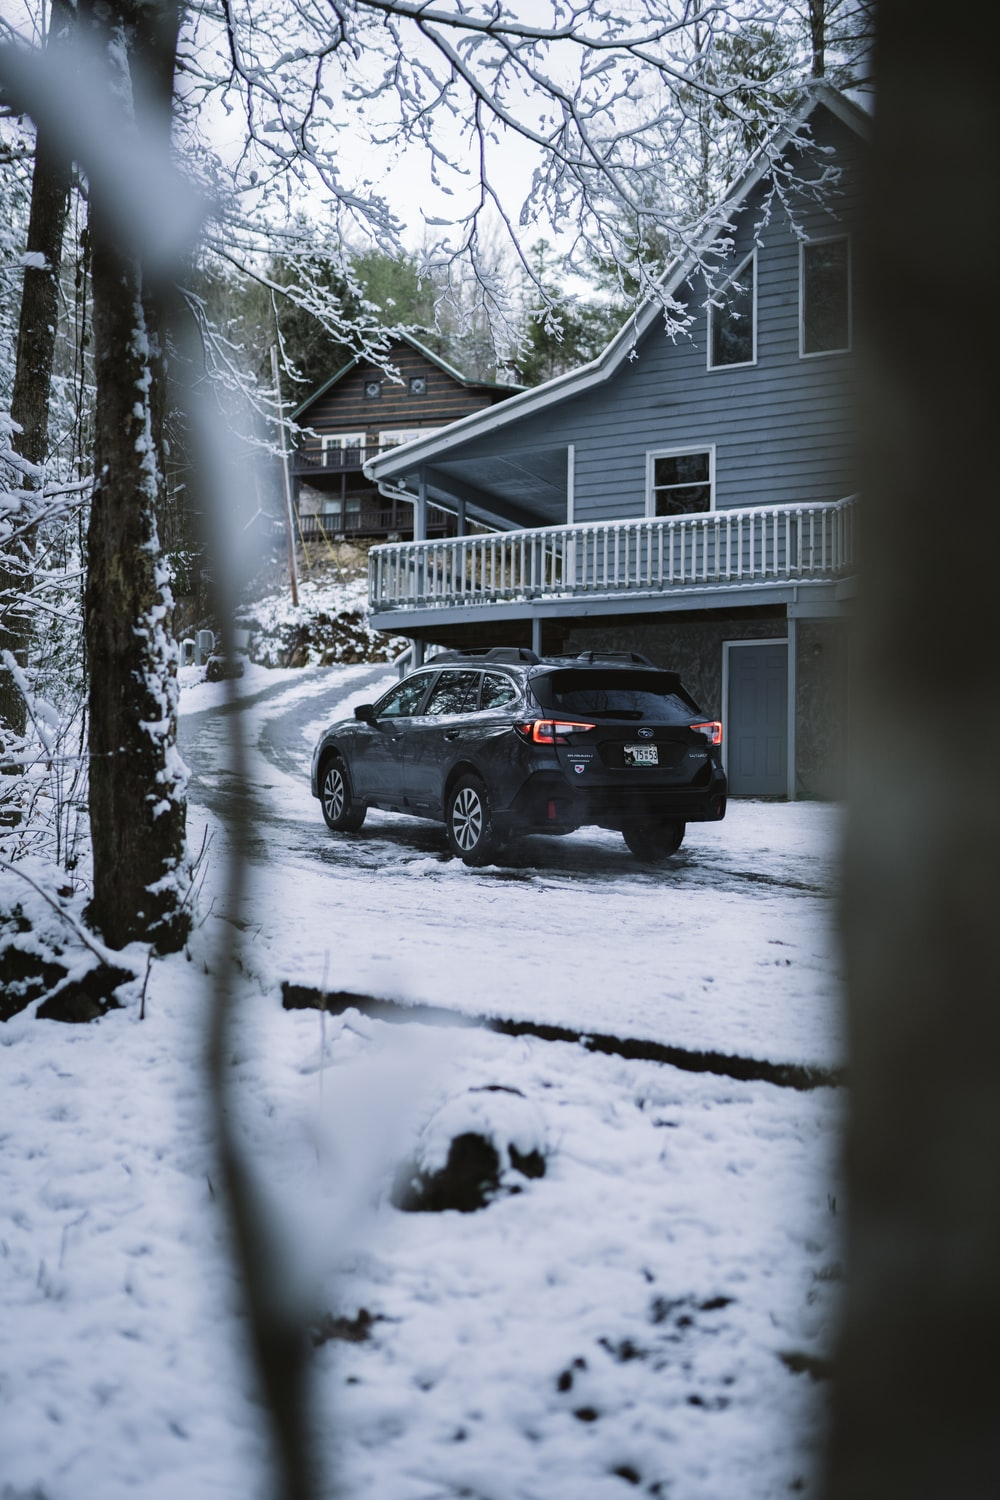 black suv parked near white wooden house during winter